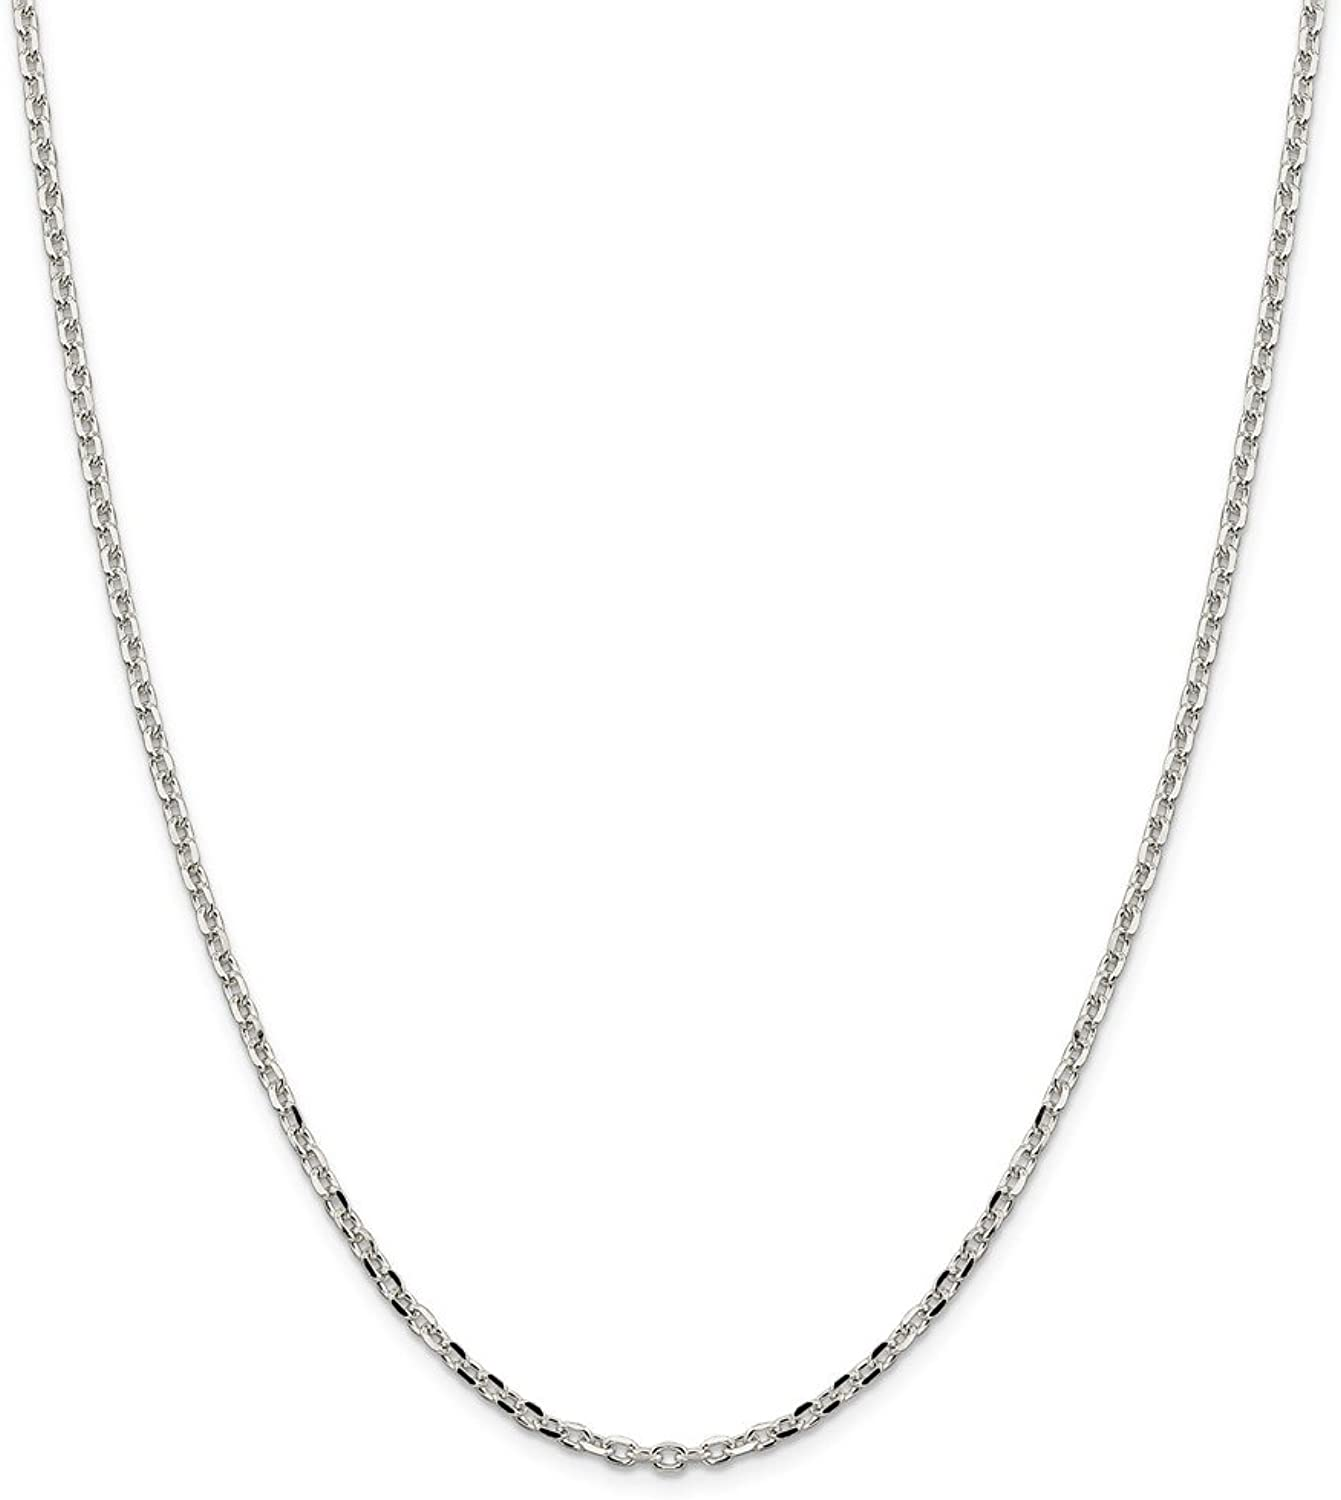 Beautiful Sterling silver 925 sterling Sterling Silver 2.75mm Diamondcut Cable Chain